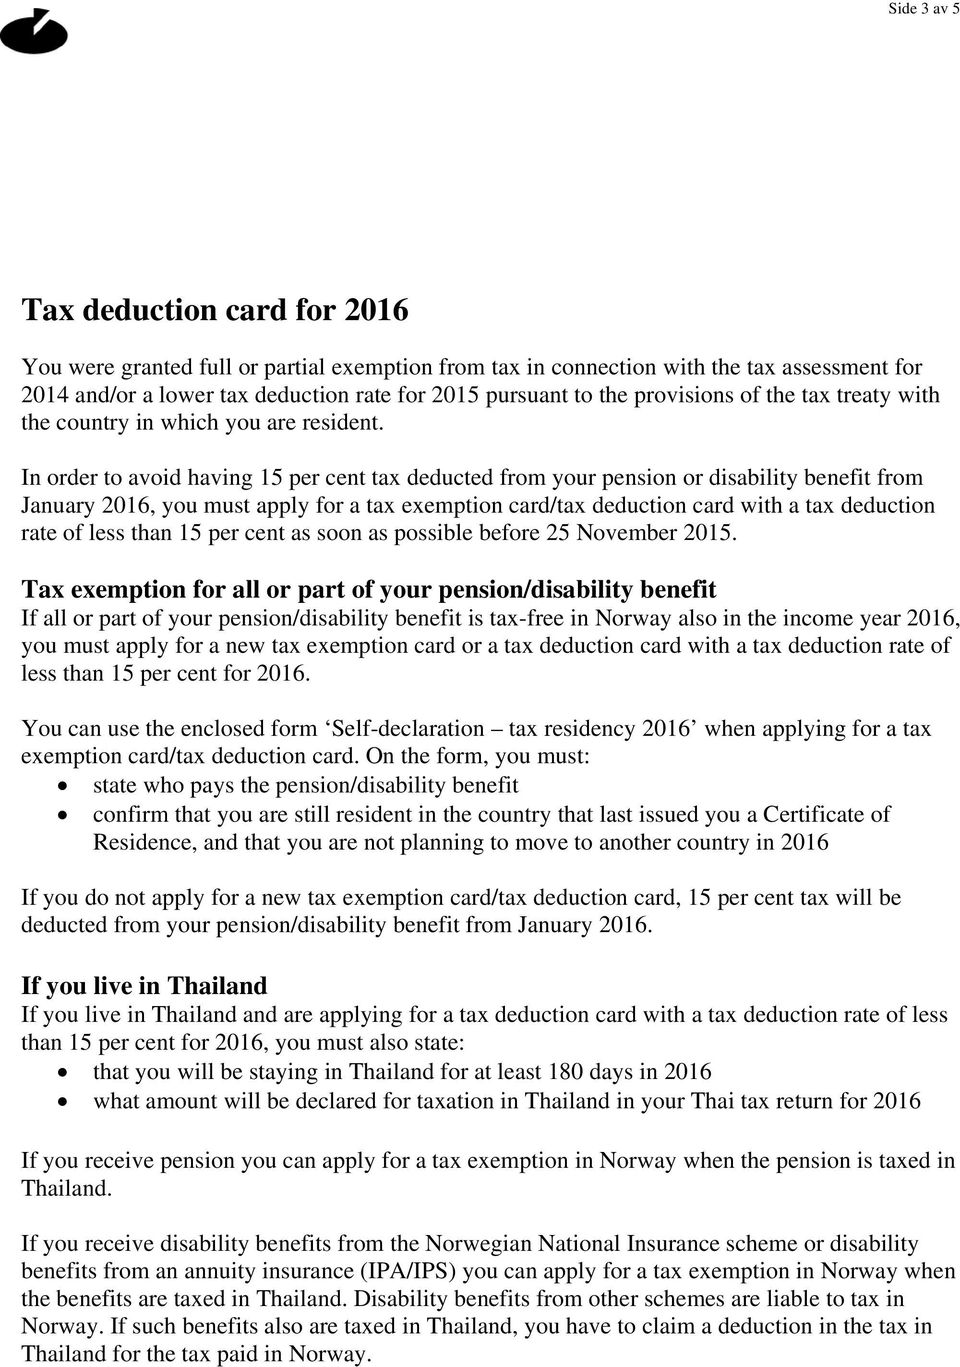 In order to avoid having 15 per cent tax deducted from your pension or disability benefit from January 2016, you must apply for a tax exemption card/tax deduction card with a tax deduction rate of